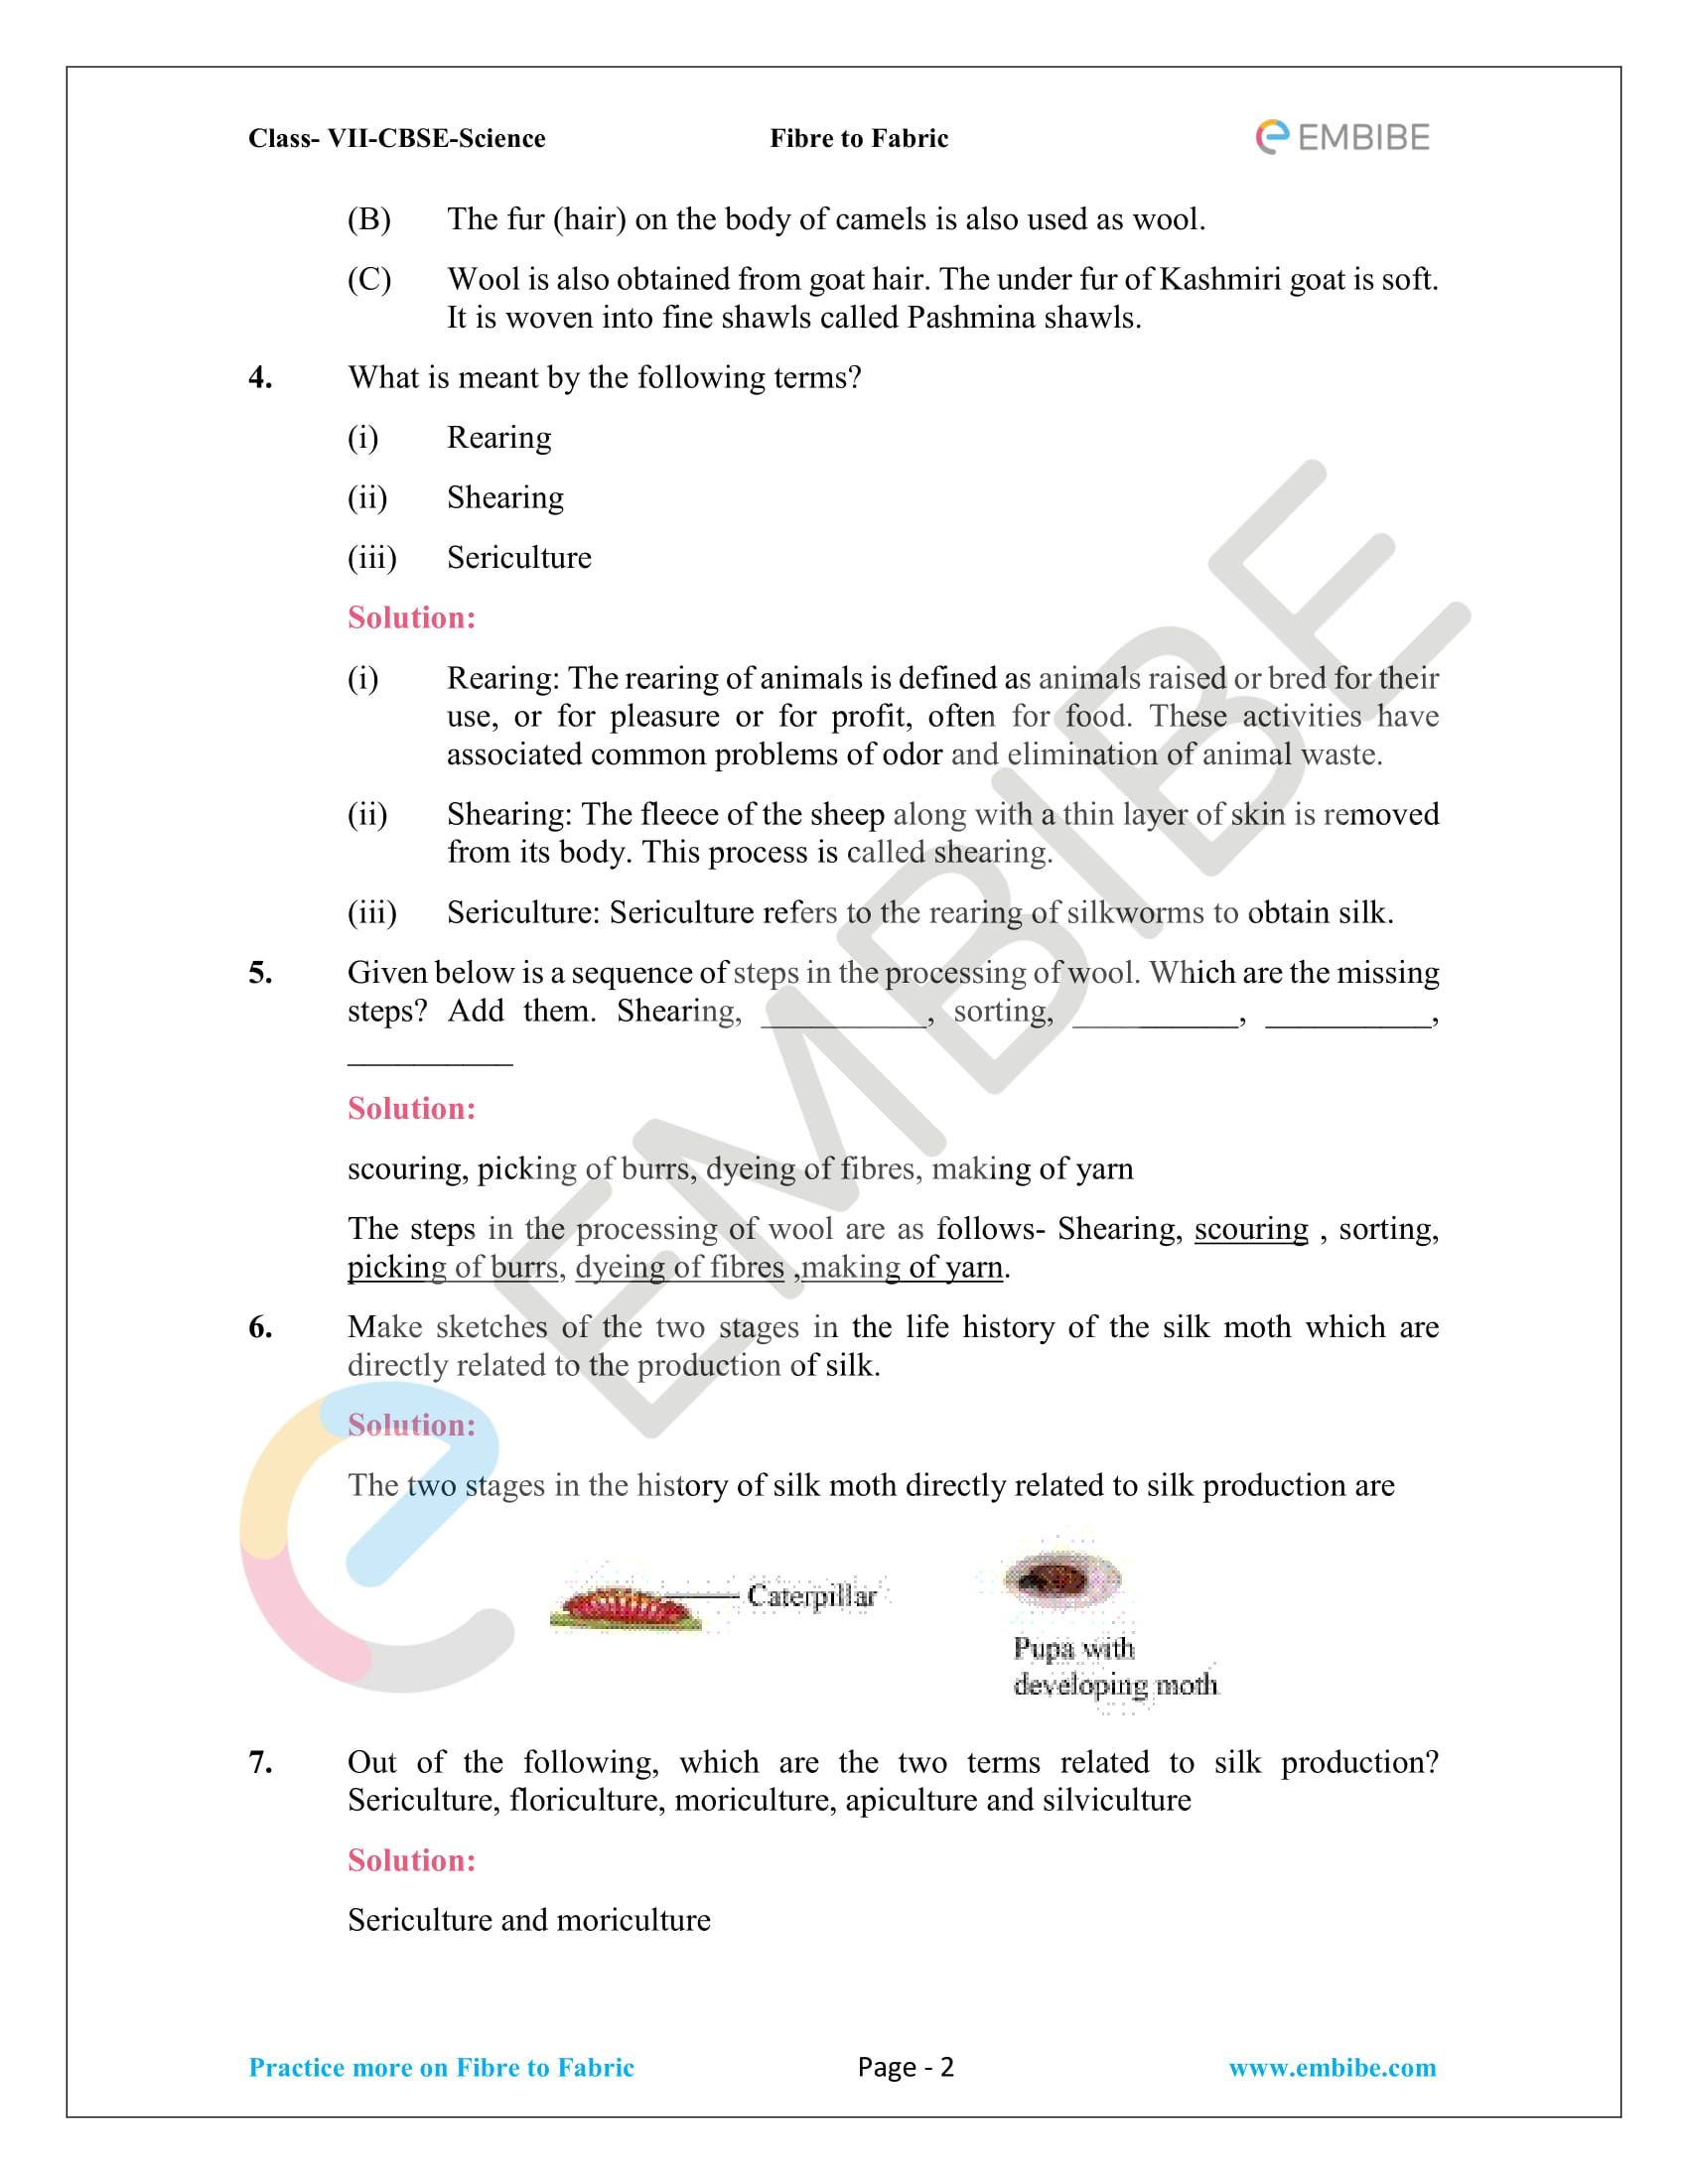 CBSE NCERT Solutions For Class 7 Science Chapter 3